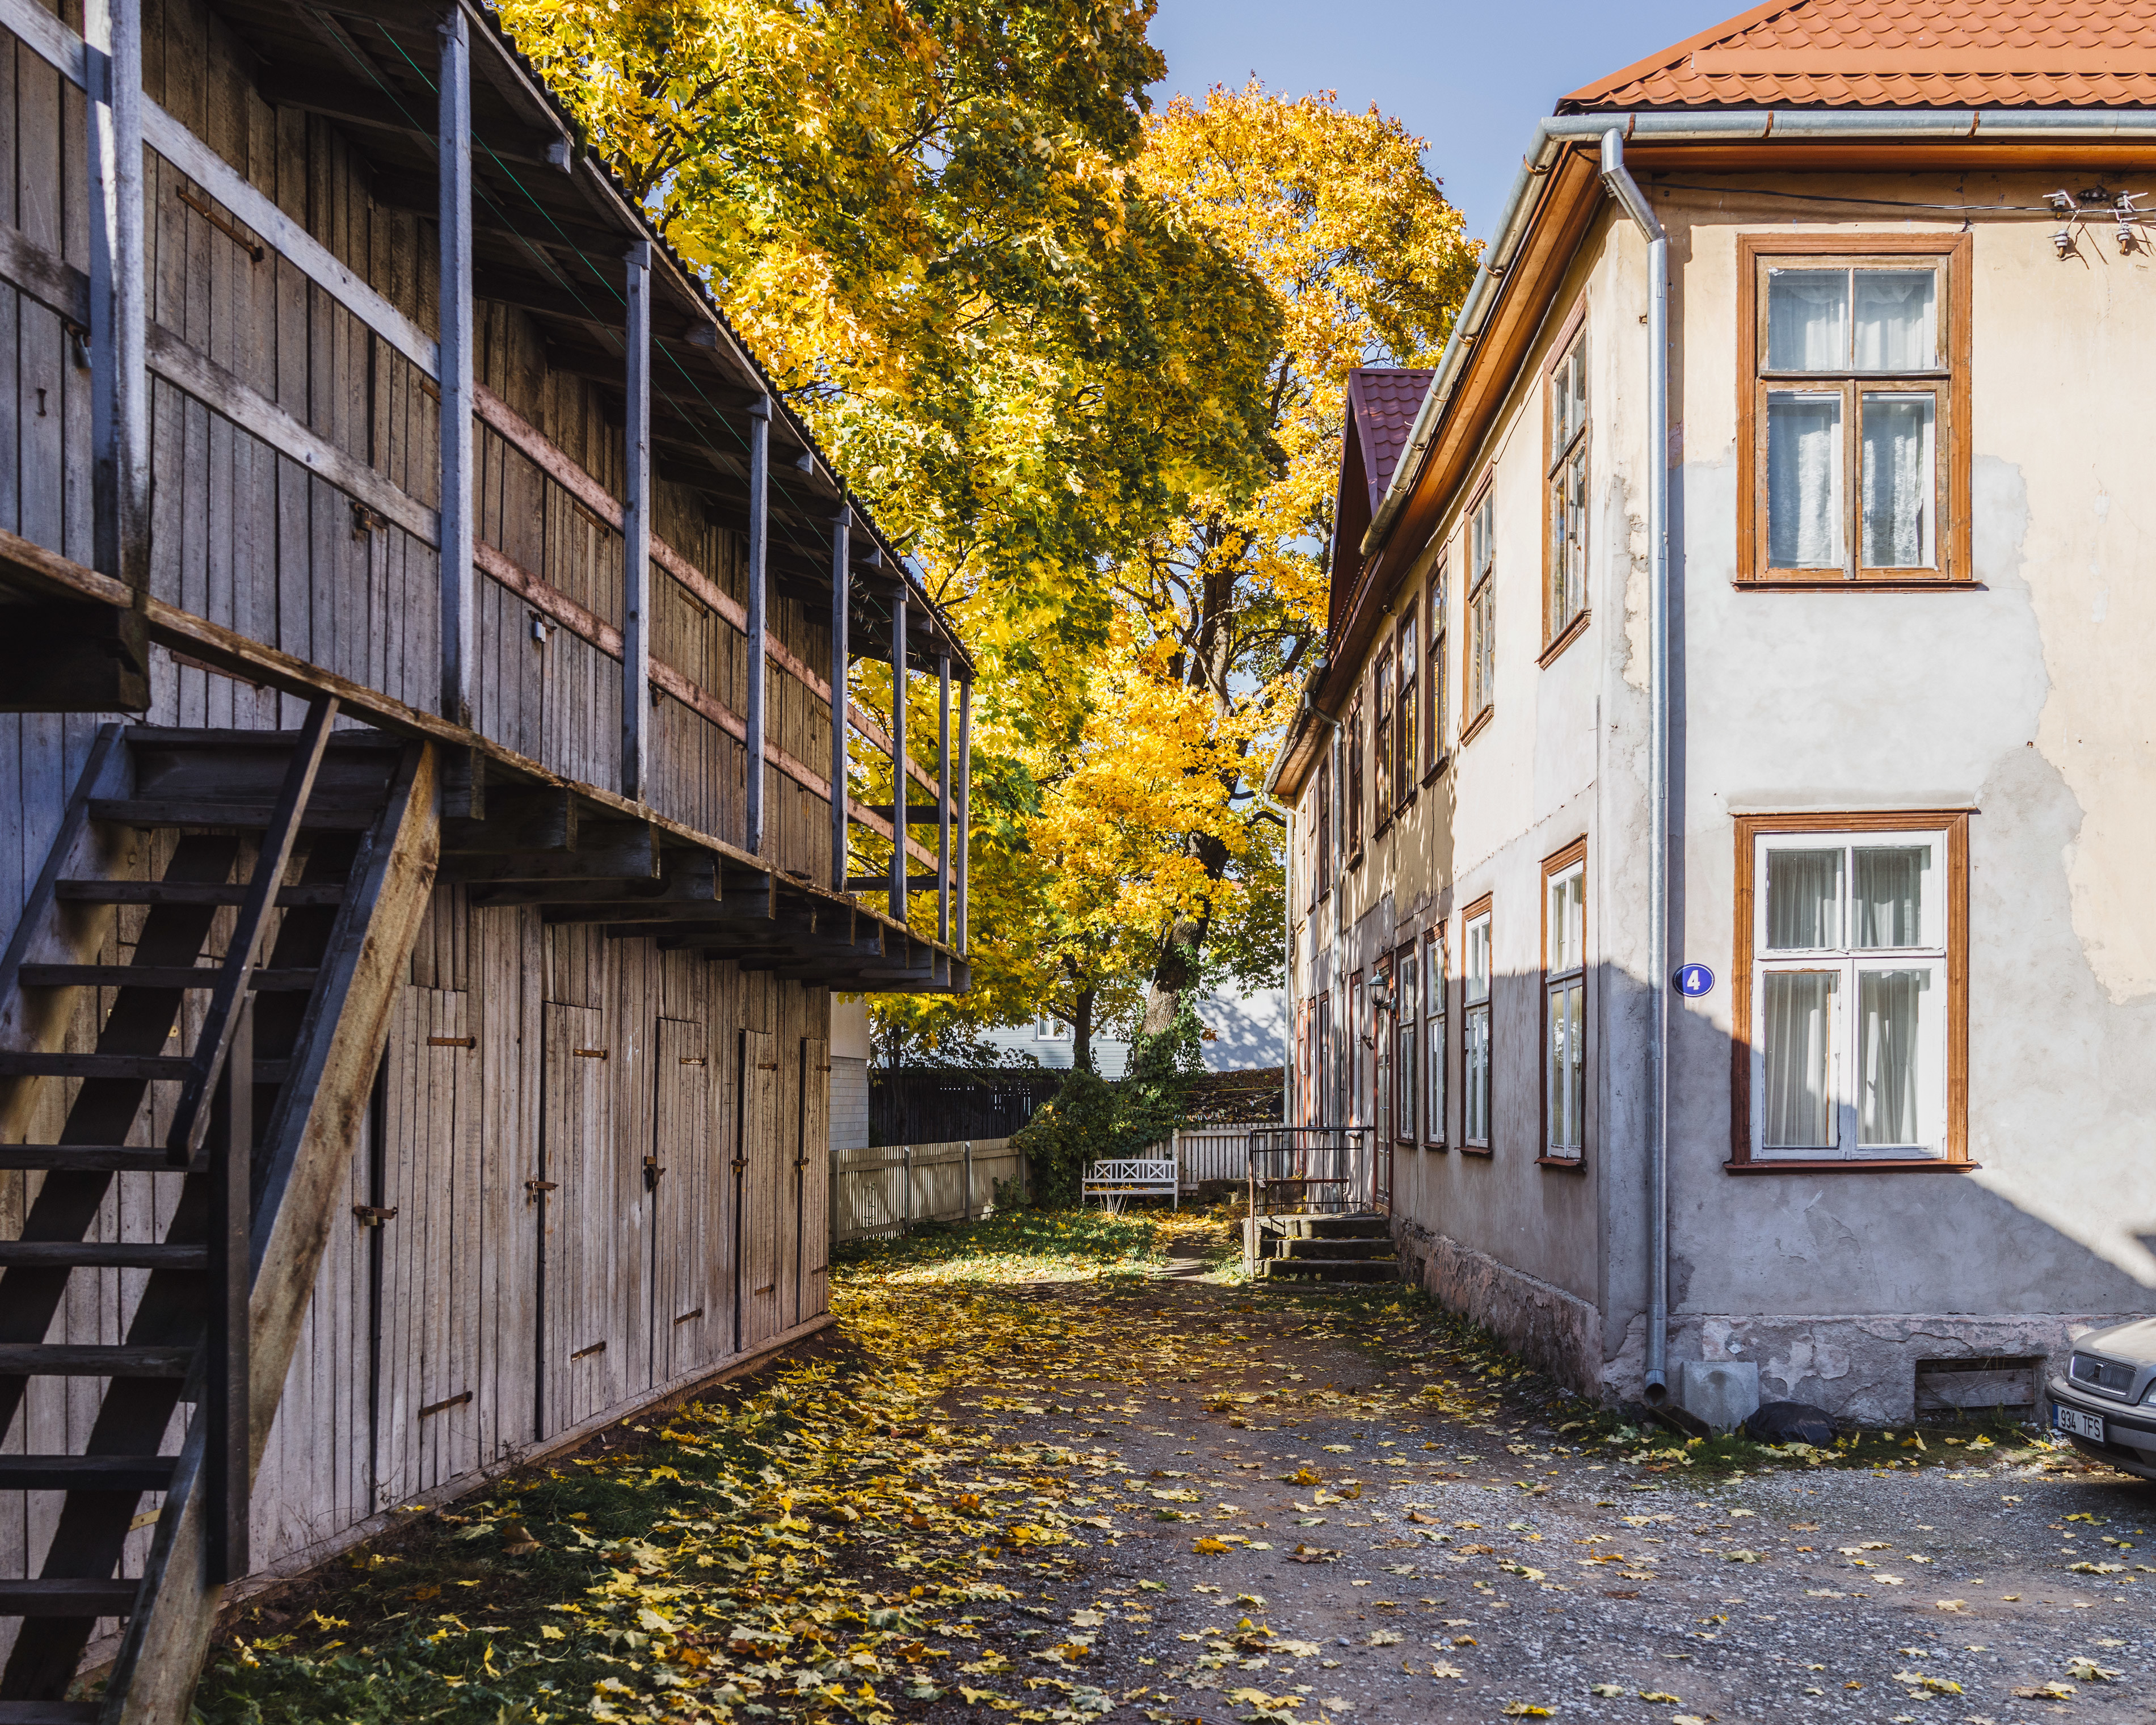 """Karlova, Tartu. I wandered into this courtyard and complimented the locals for the beauty of it. Their tired response: """"Yeah, right, it will be November in no time"""" –alluding that this all is just deceptive pre-rot. Yes –all those leaves are beautiful only until it's not your responsibility to clean this mess up after the show."""